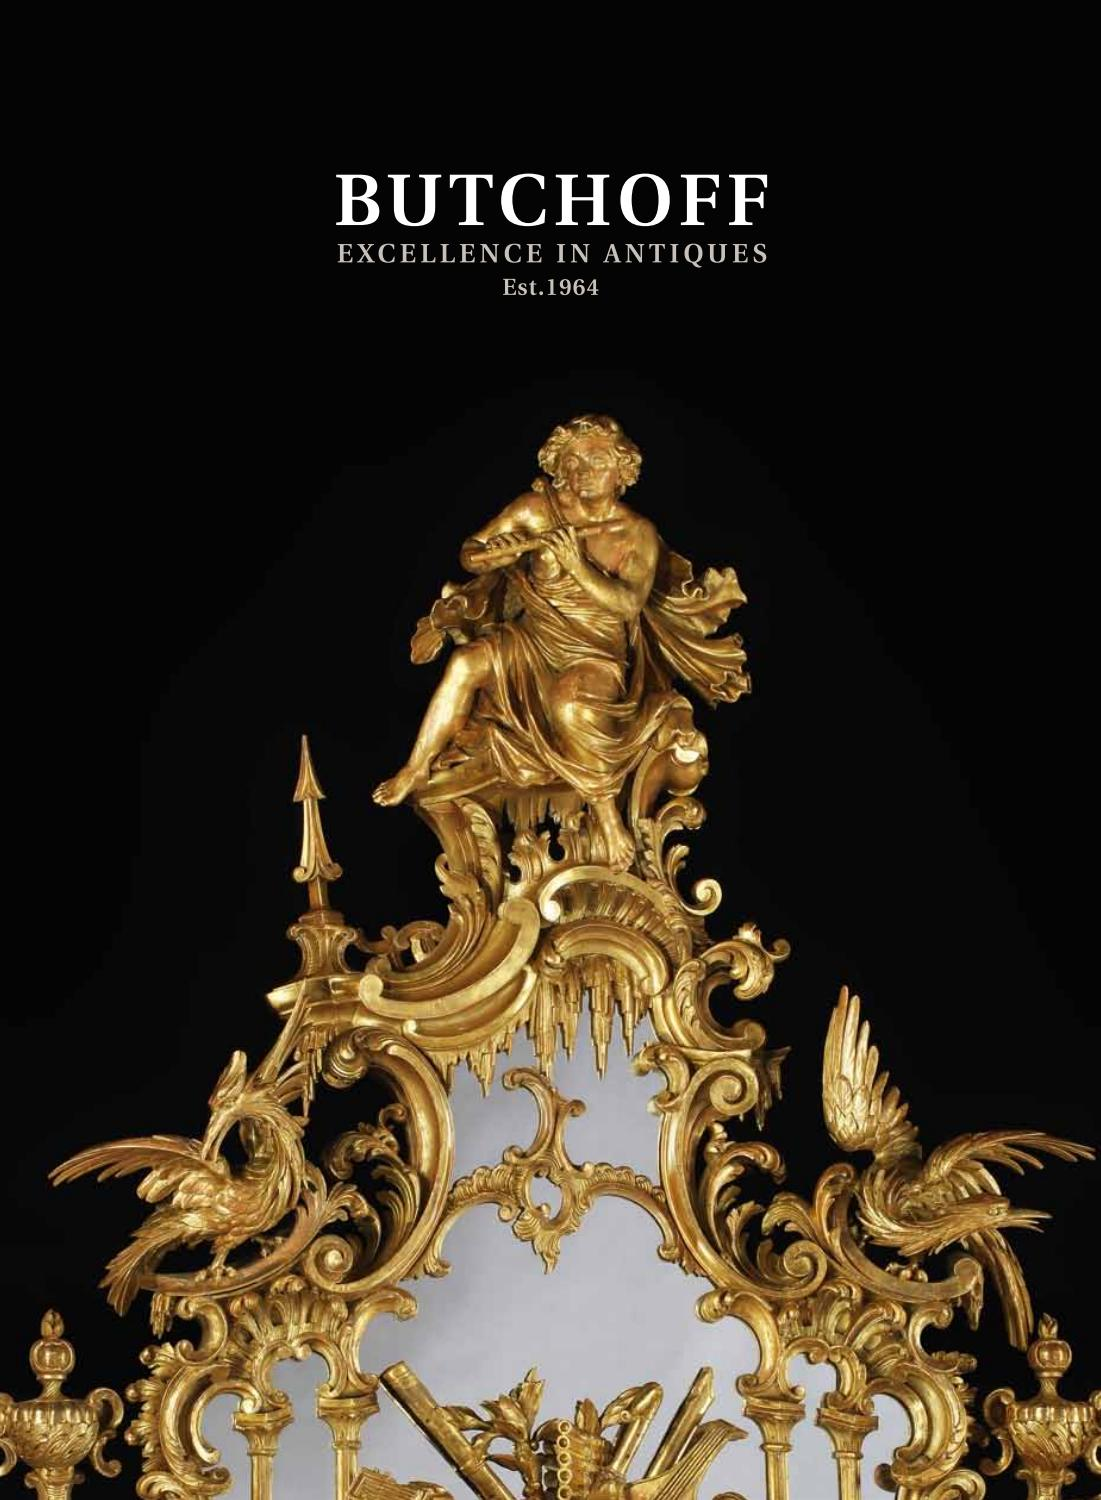 Butchoff Antiques 2019 By Artsolution Sprl Issuu